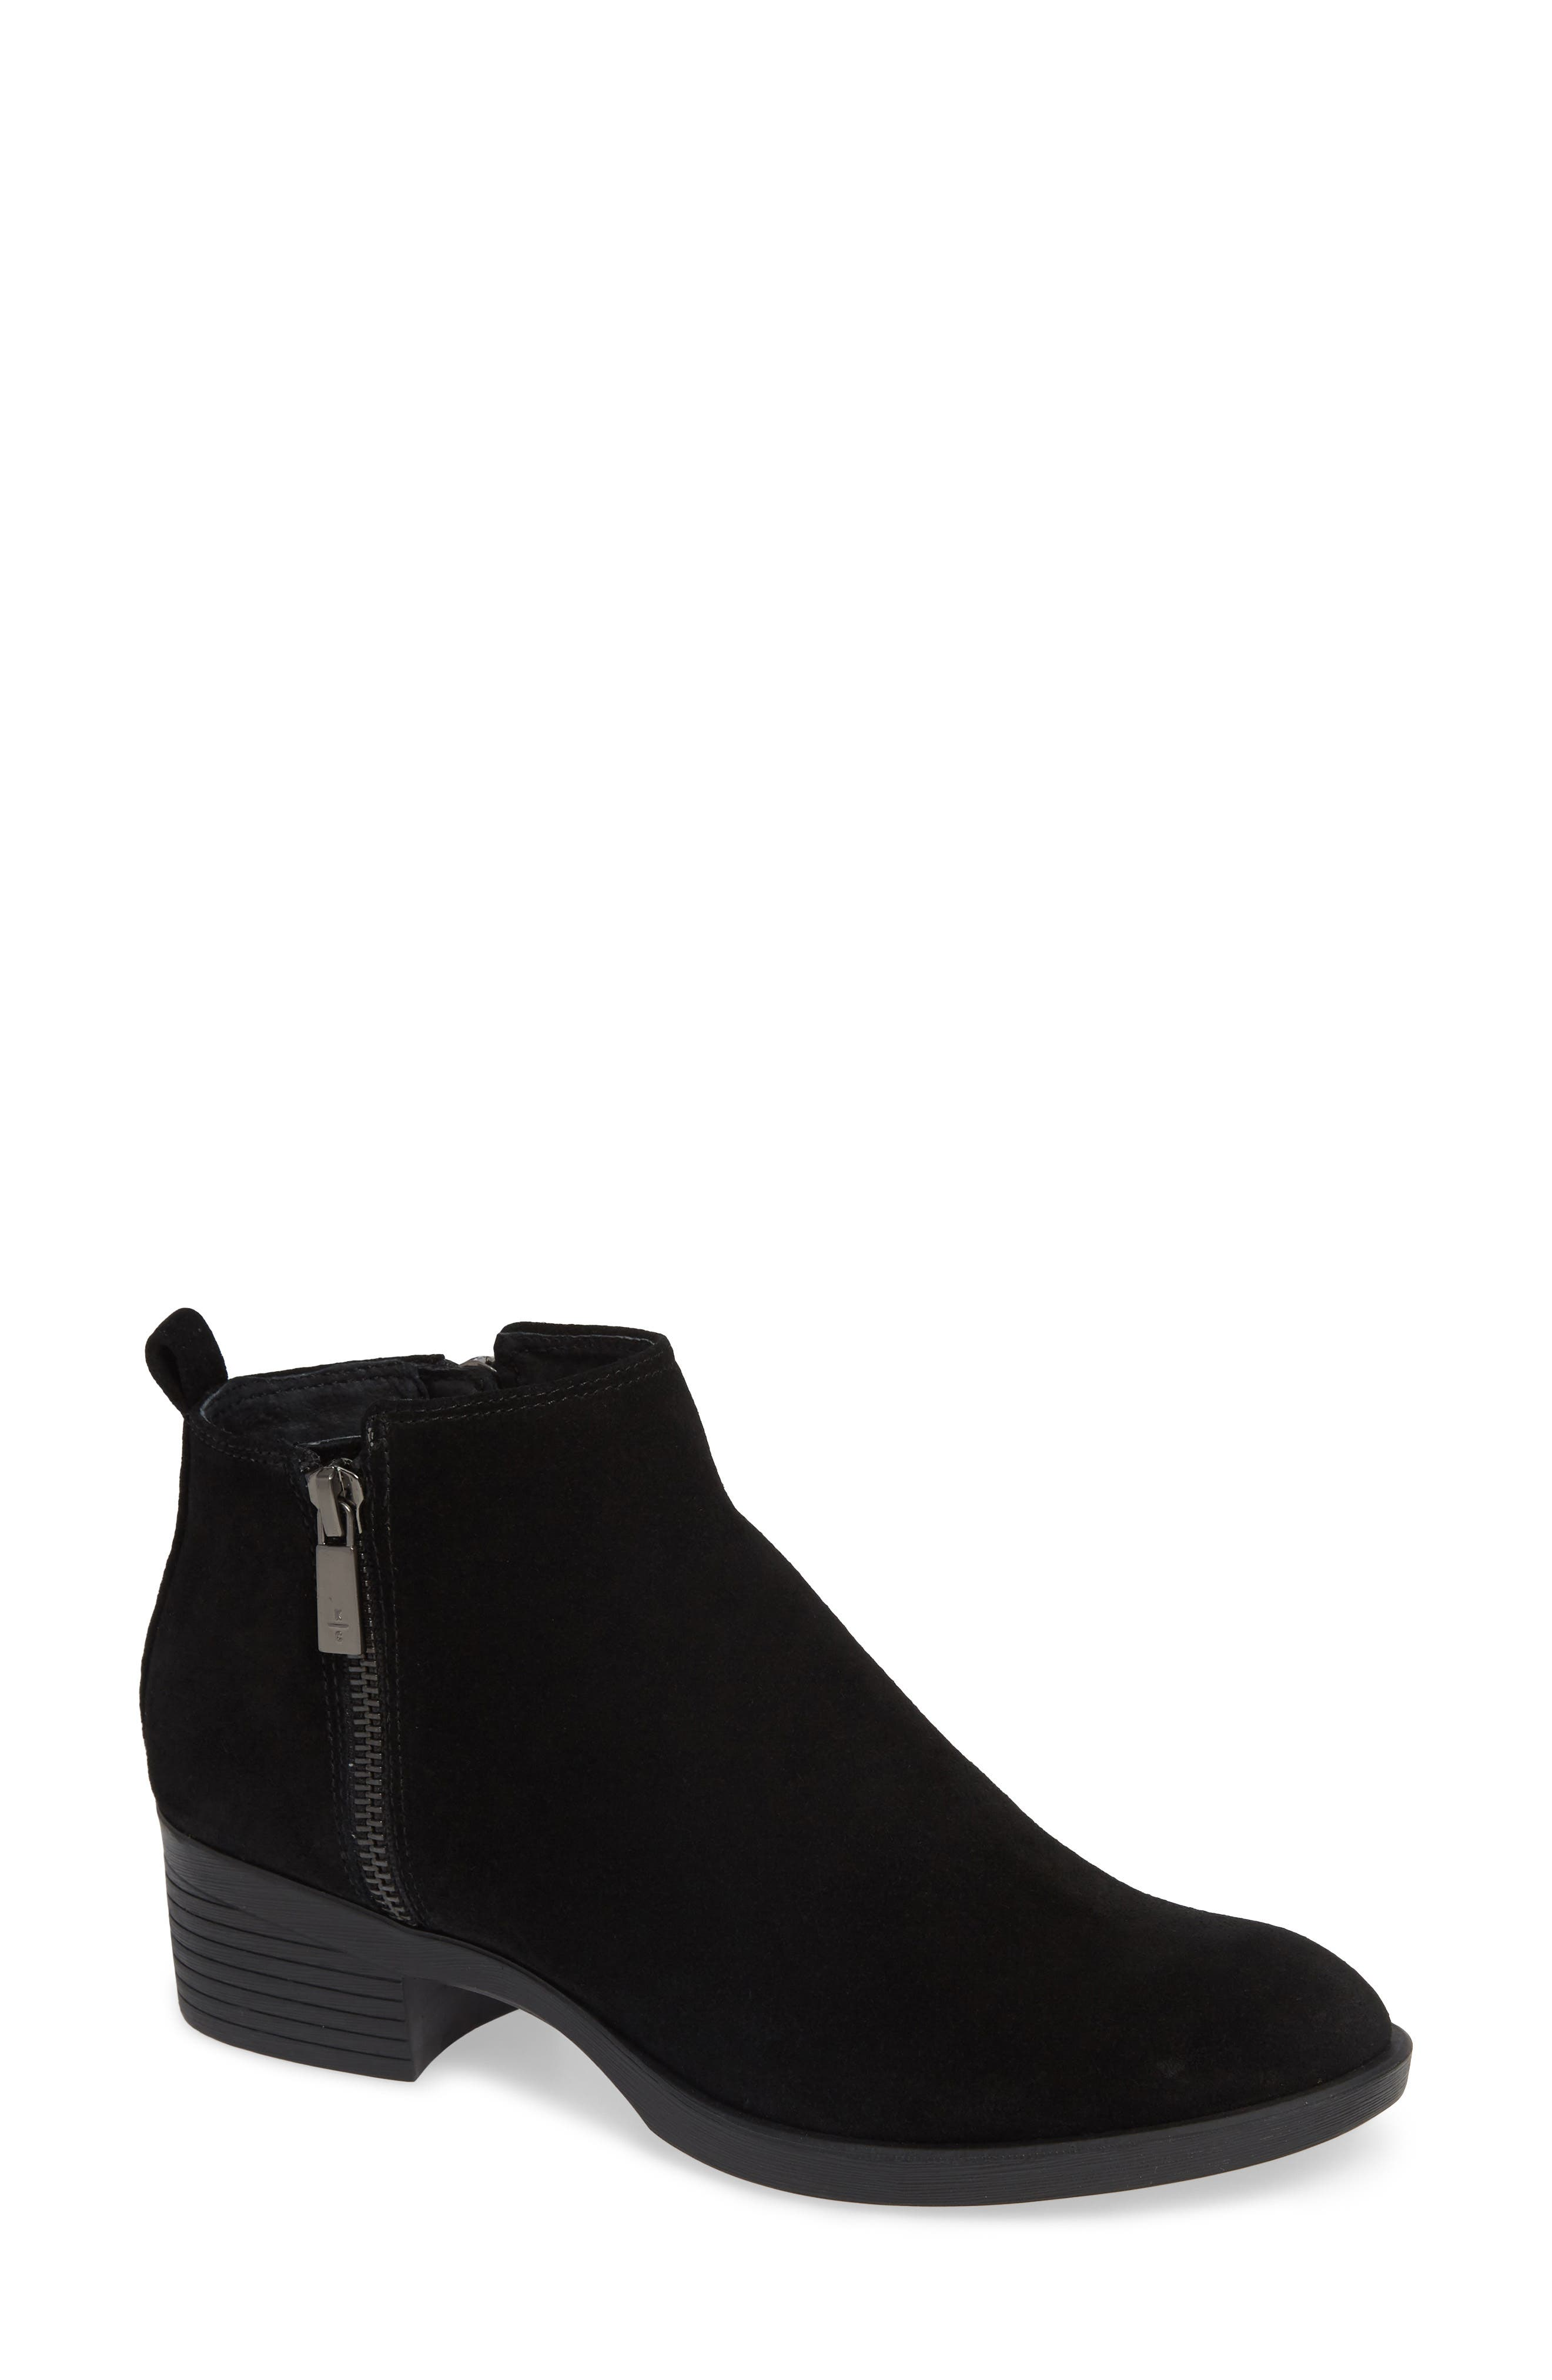 'Levon' Bootie,                         Main,                         color, BLACK SUEDE